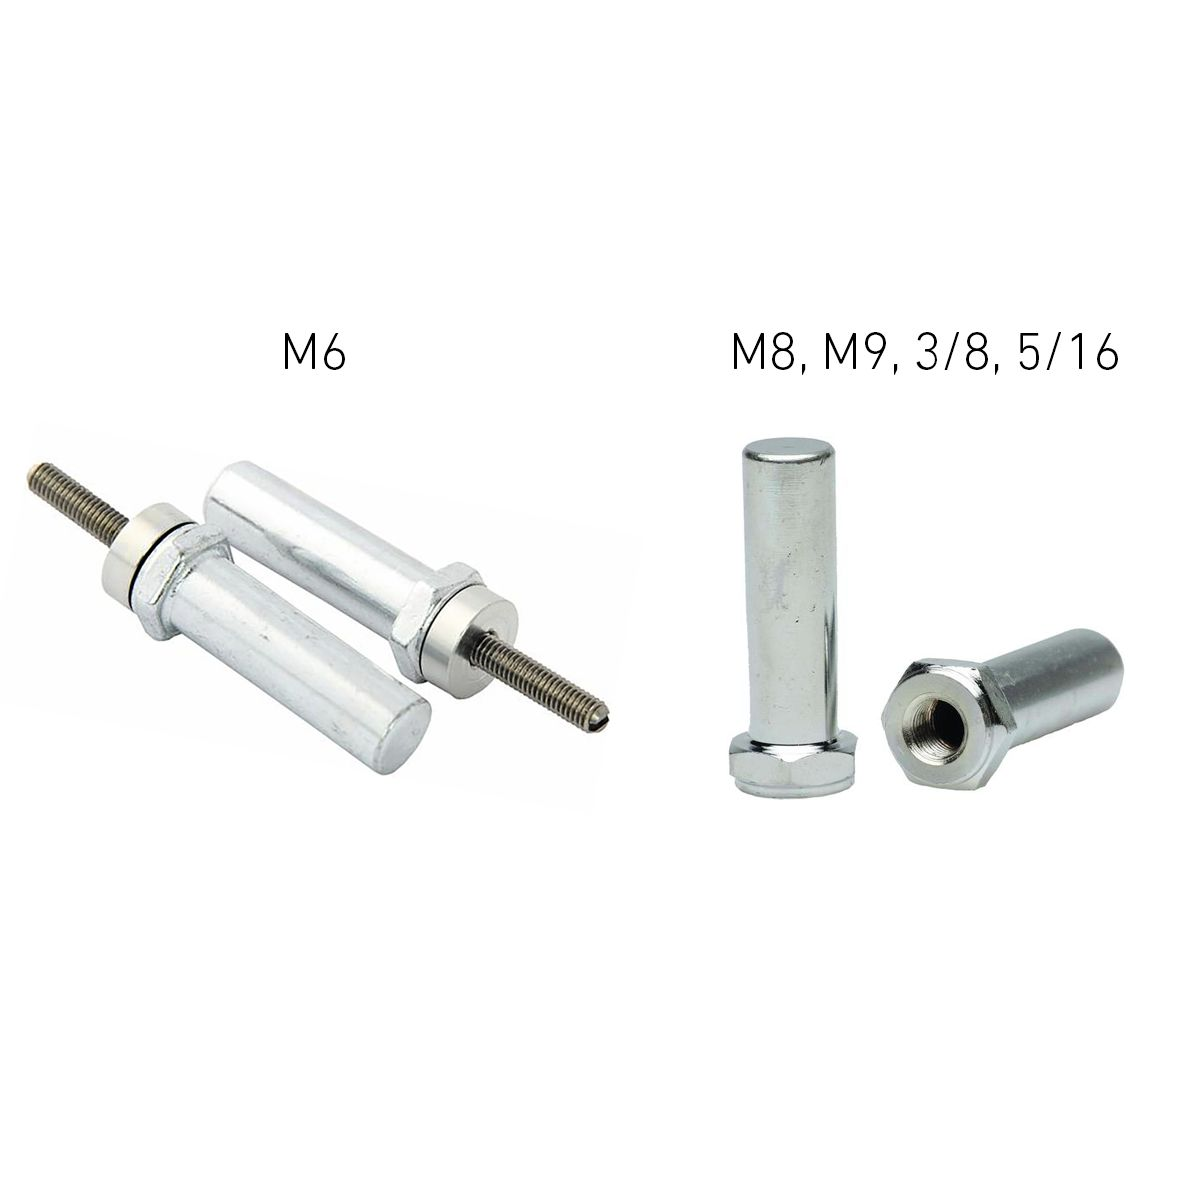 FollowMe Adapter Axle Extension Nut | bike_trailers_component